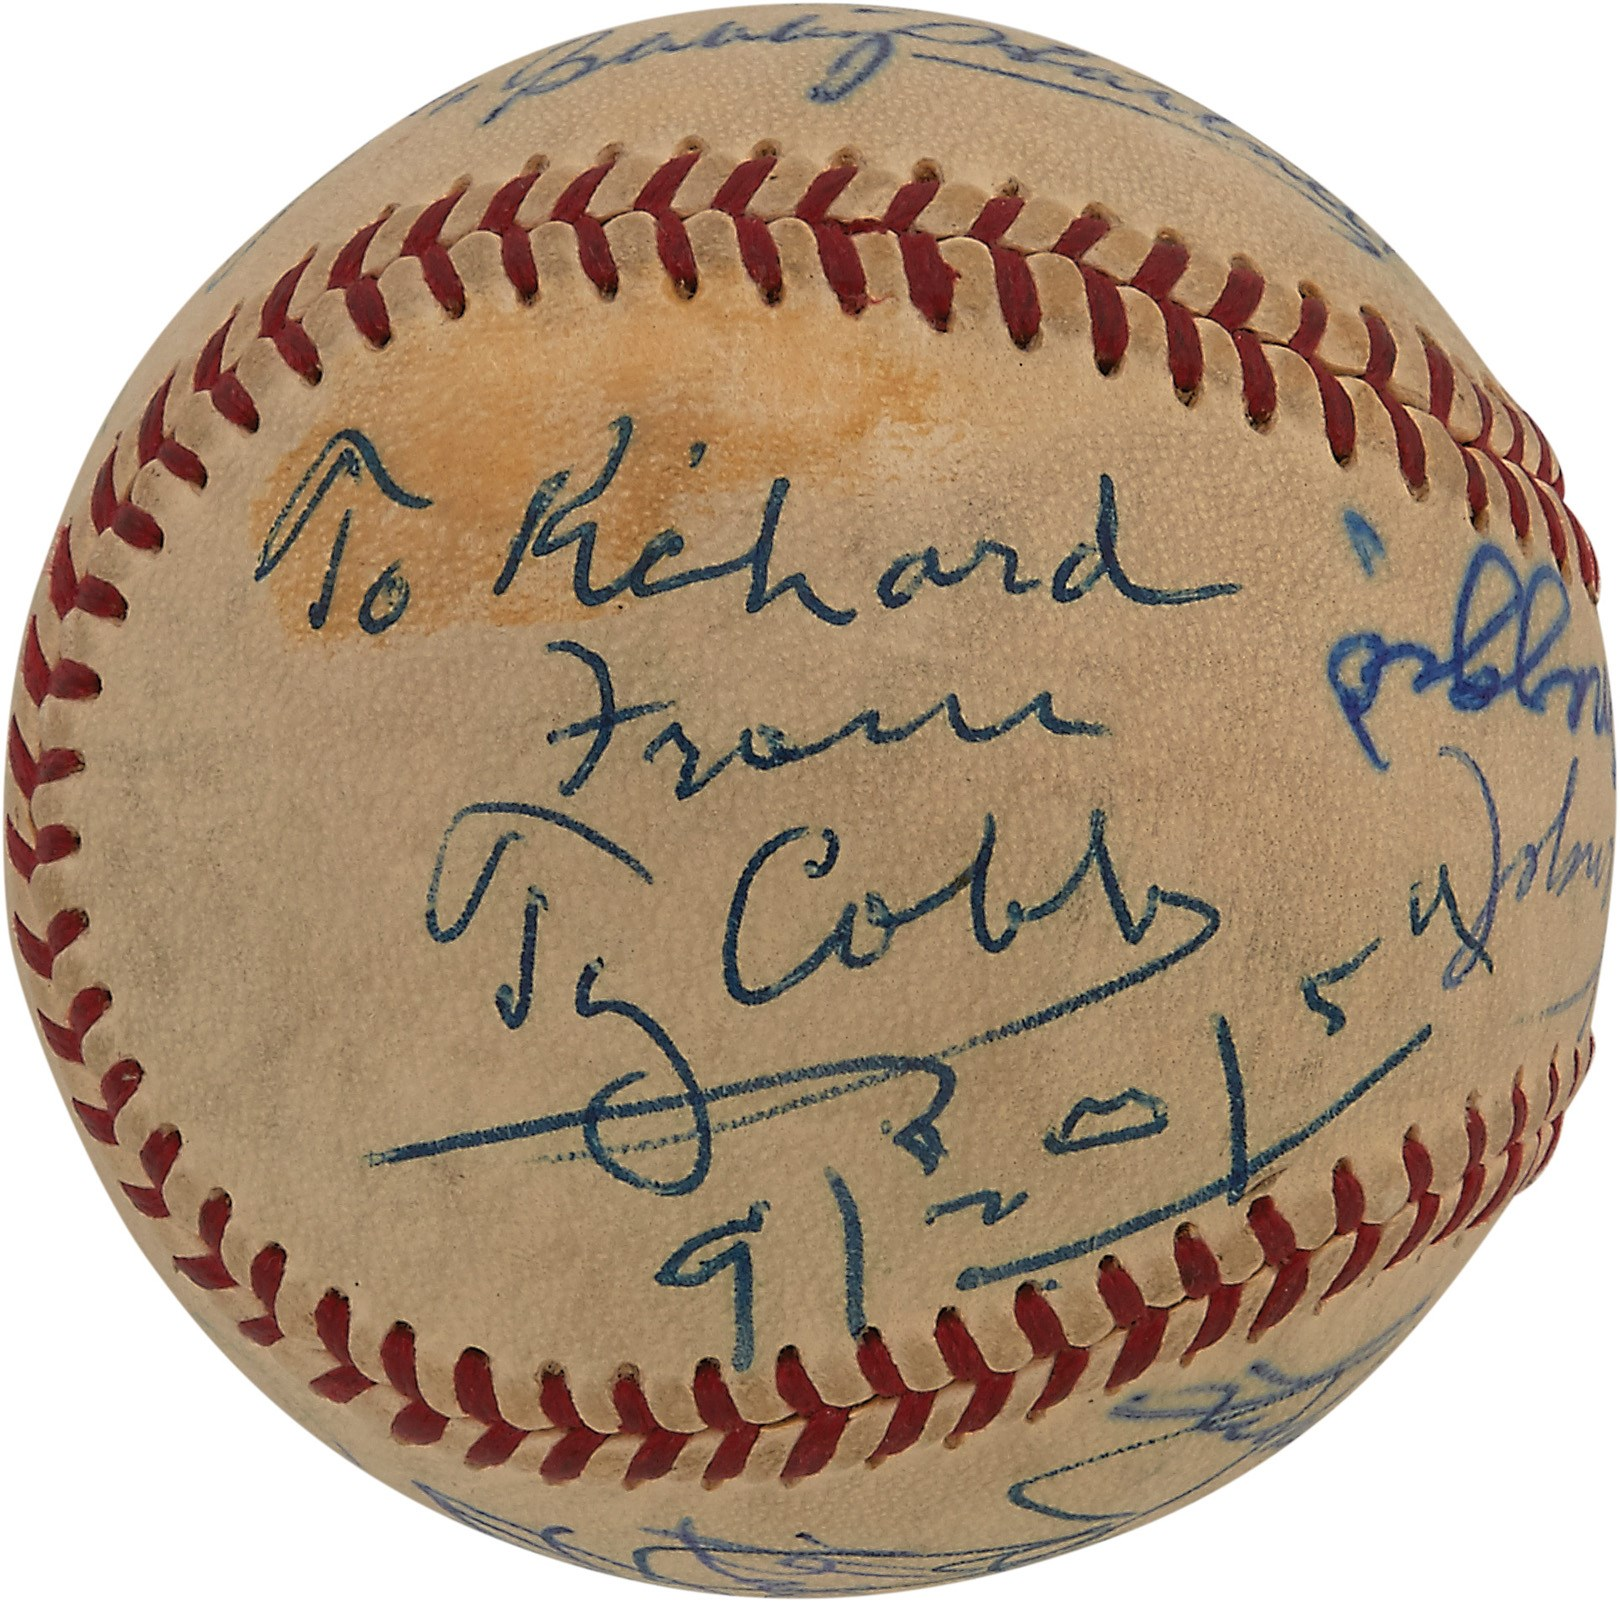 Amazing 1959 Hall of Famers Signed Baseball w/Ty Cobb & Jackie Robinson (PSA)